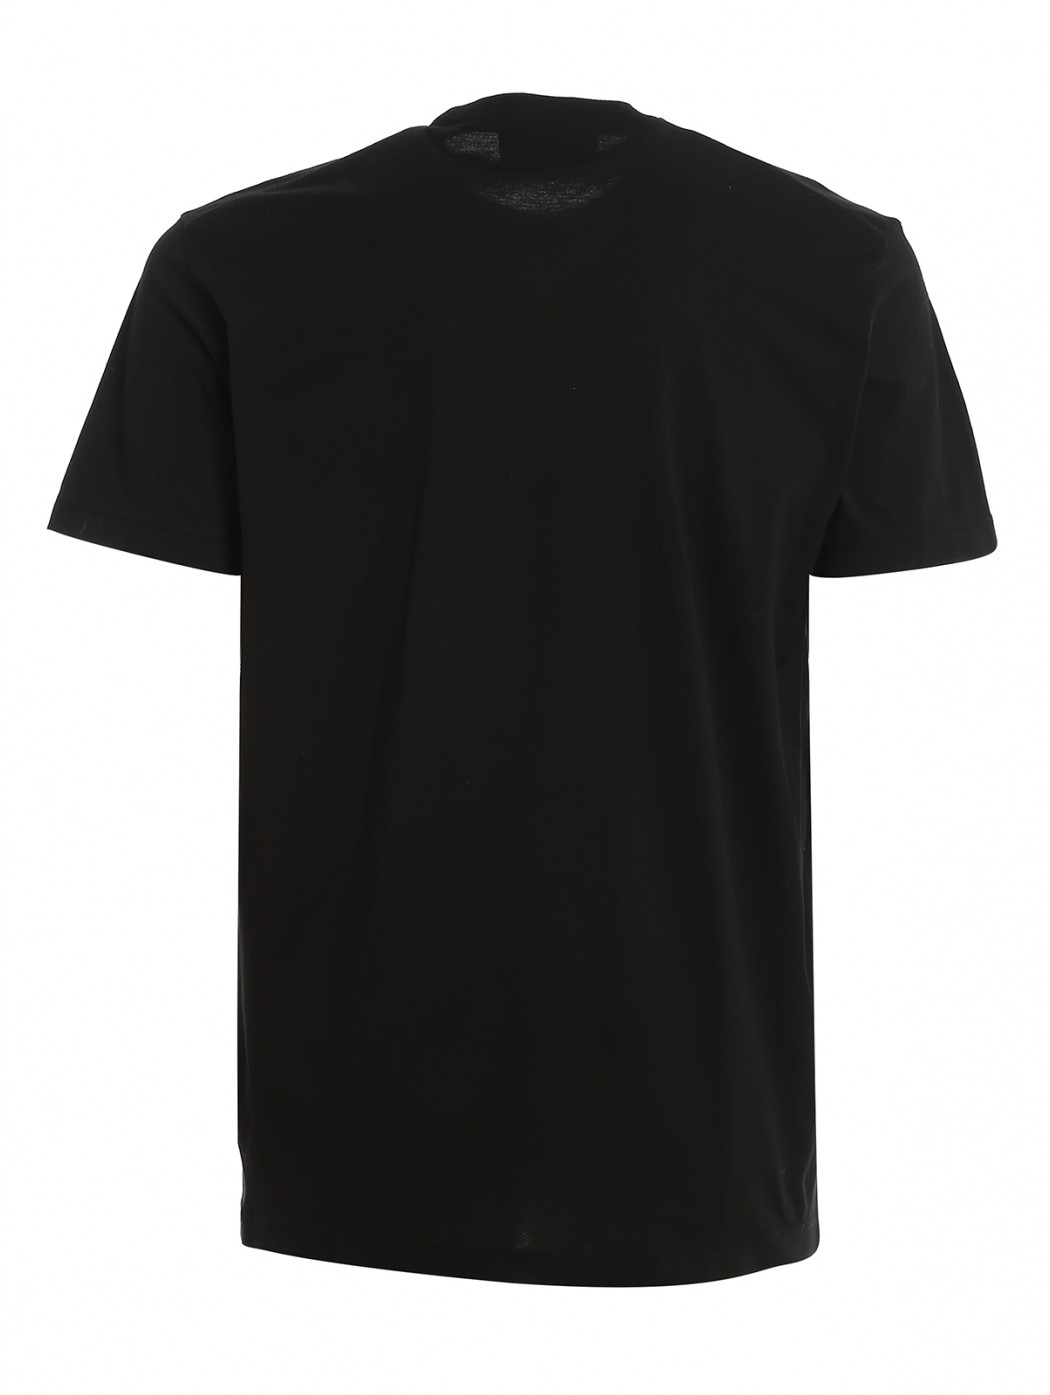 T-shirt con stampa DSQUARED2 S74GD0720S22427 900